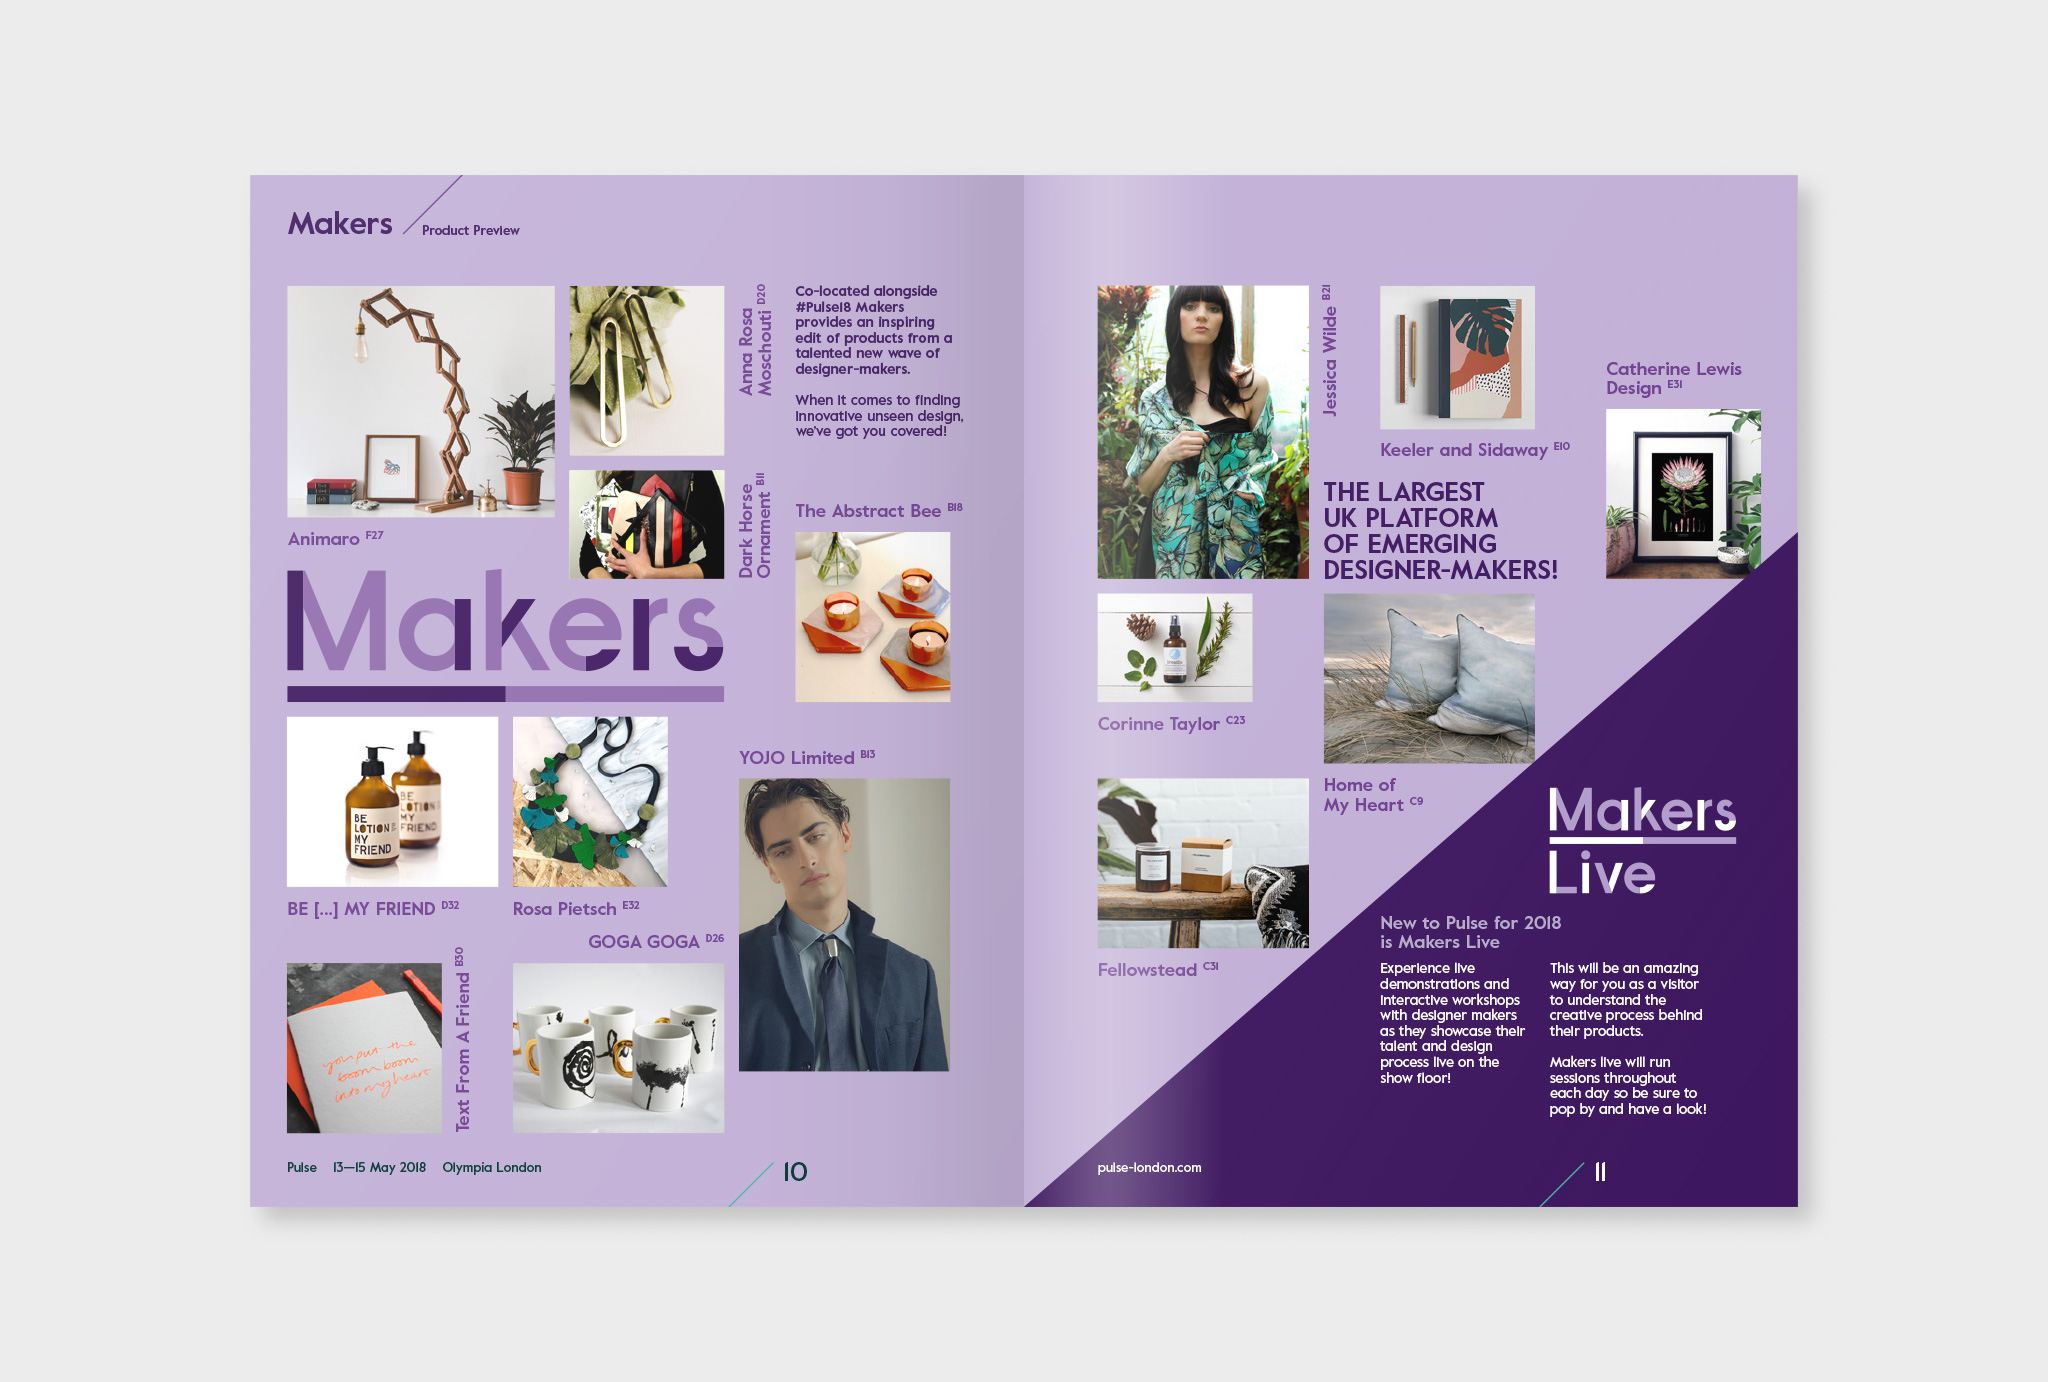 light violet pages of the magazine showing brands from the Makers sector of the show